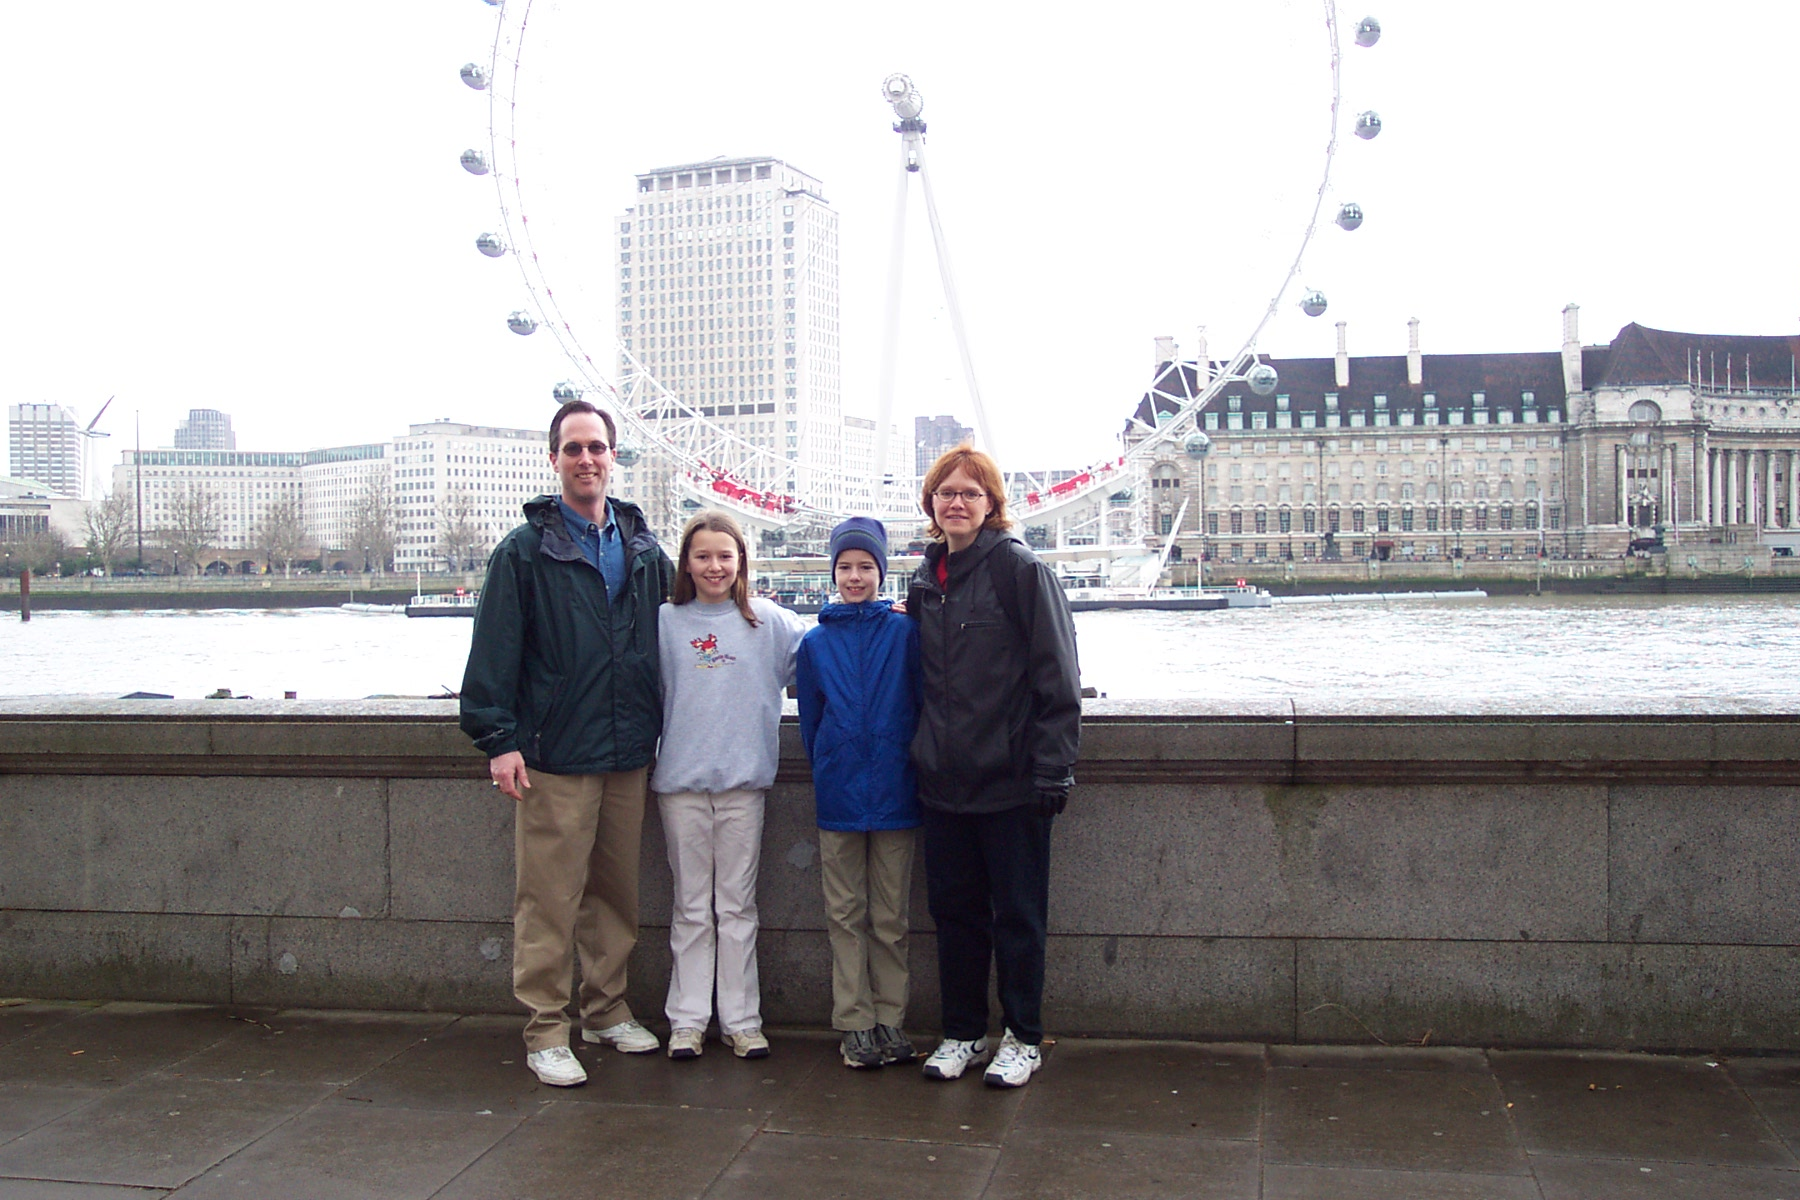 Me and my family on a trip to London.